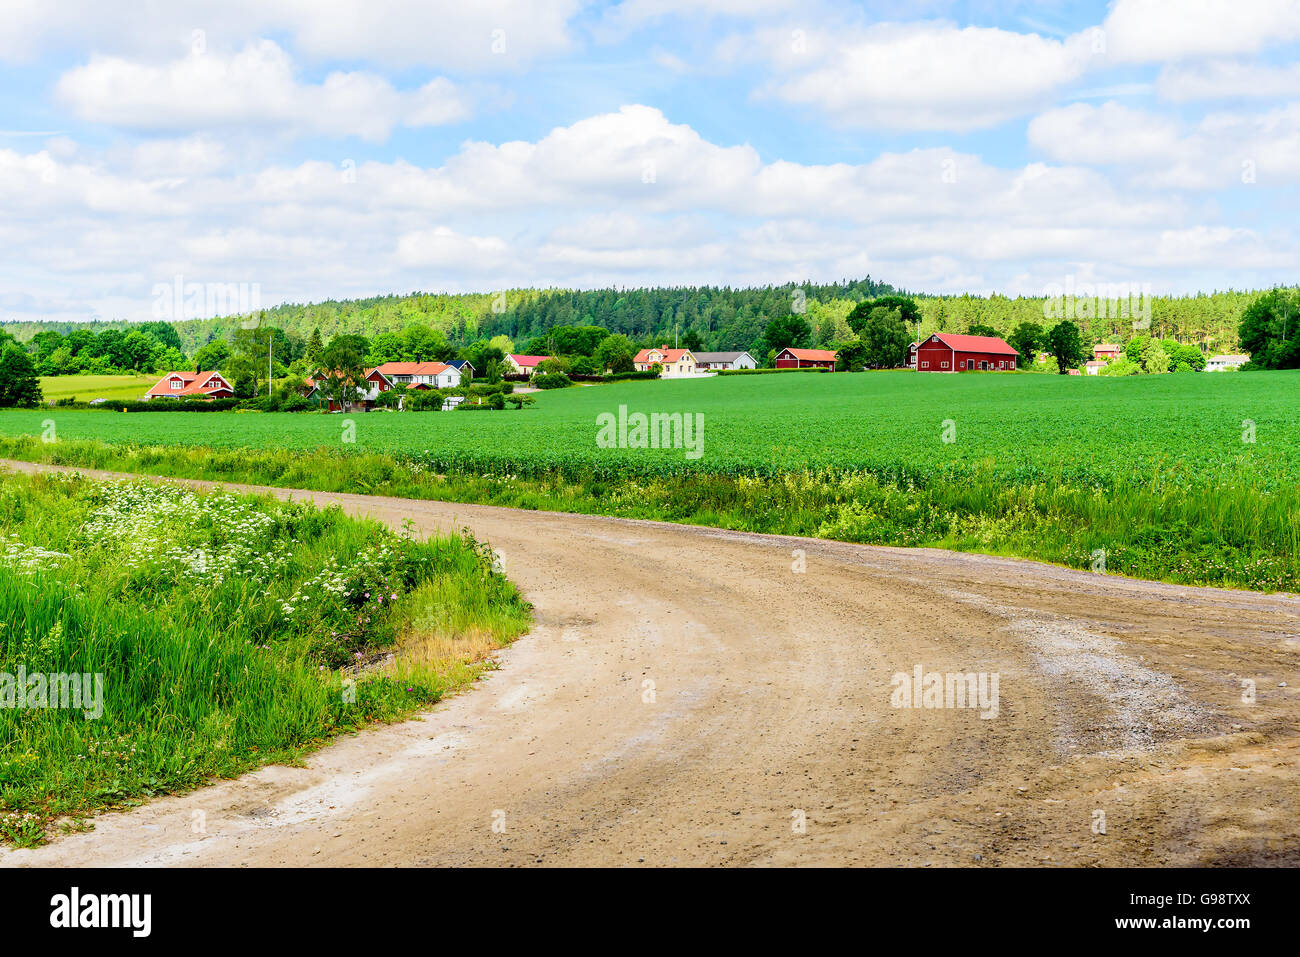 Loddby, Sweden – June 20, 2016: The village of Loddby seen from a fork in the road. Forest in the background and - Stock Image